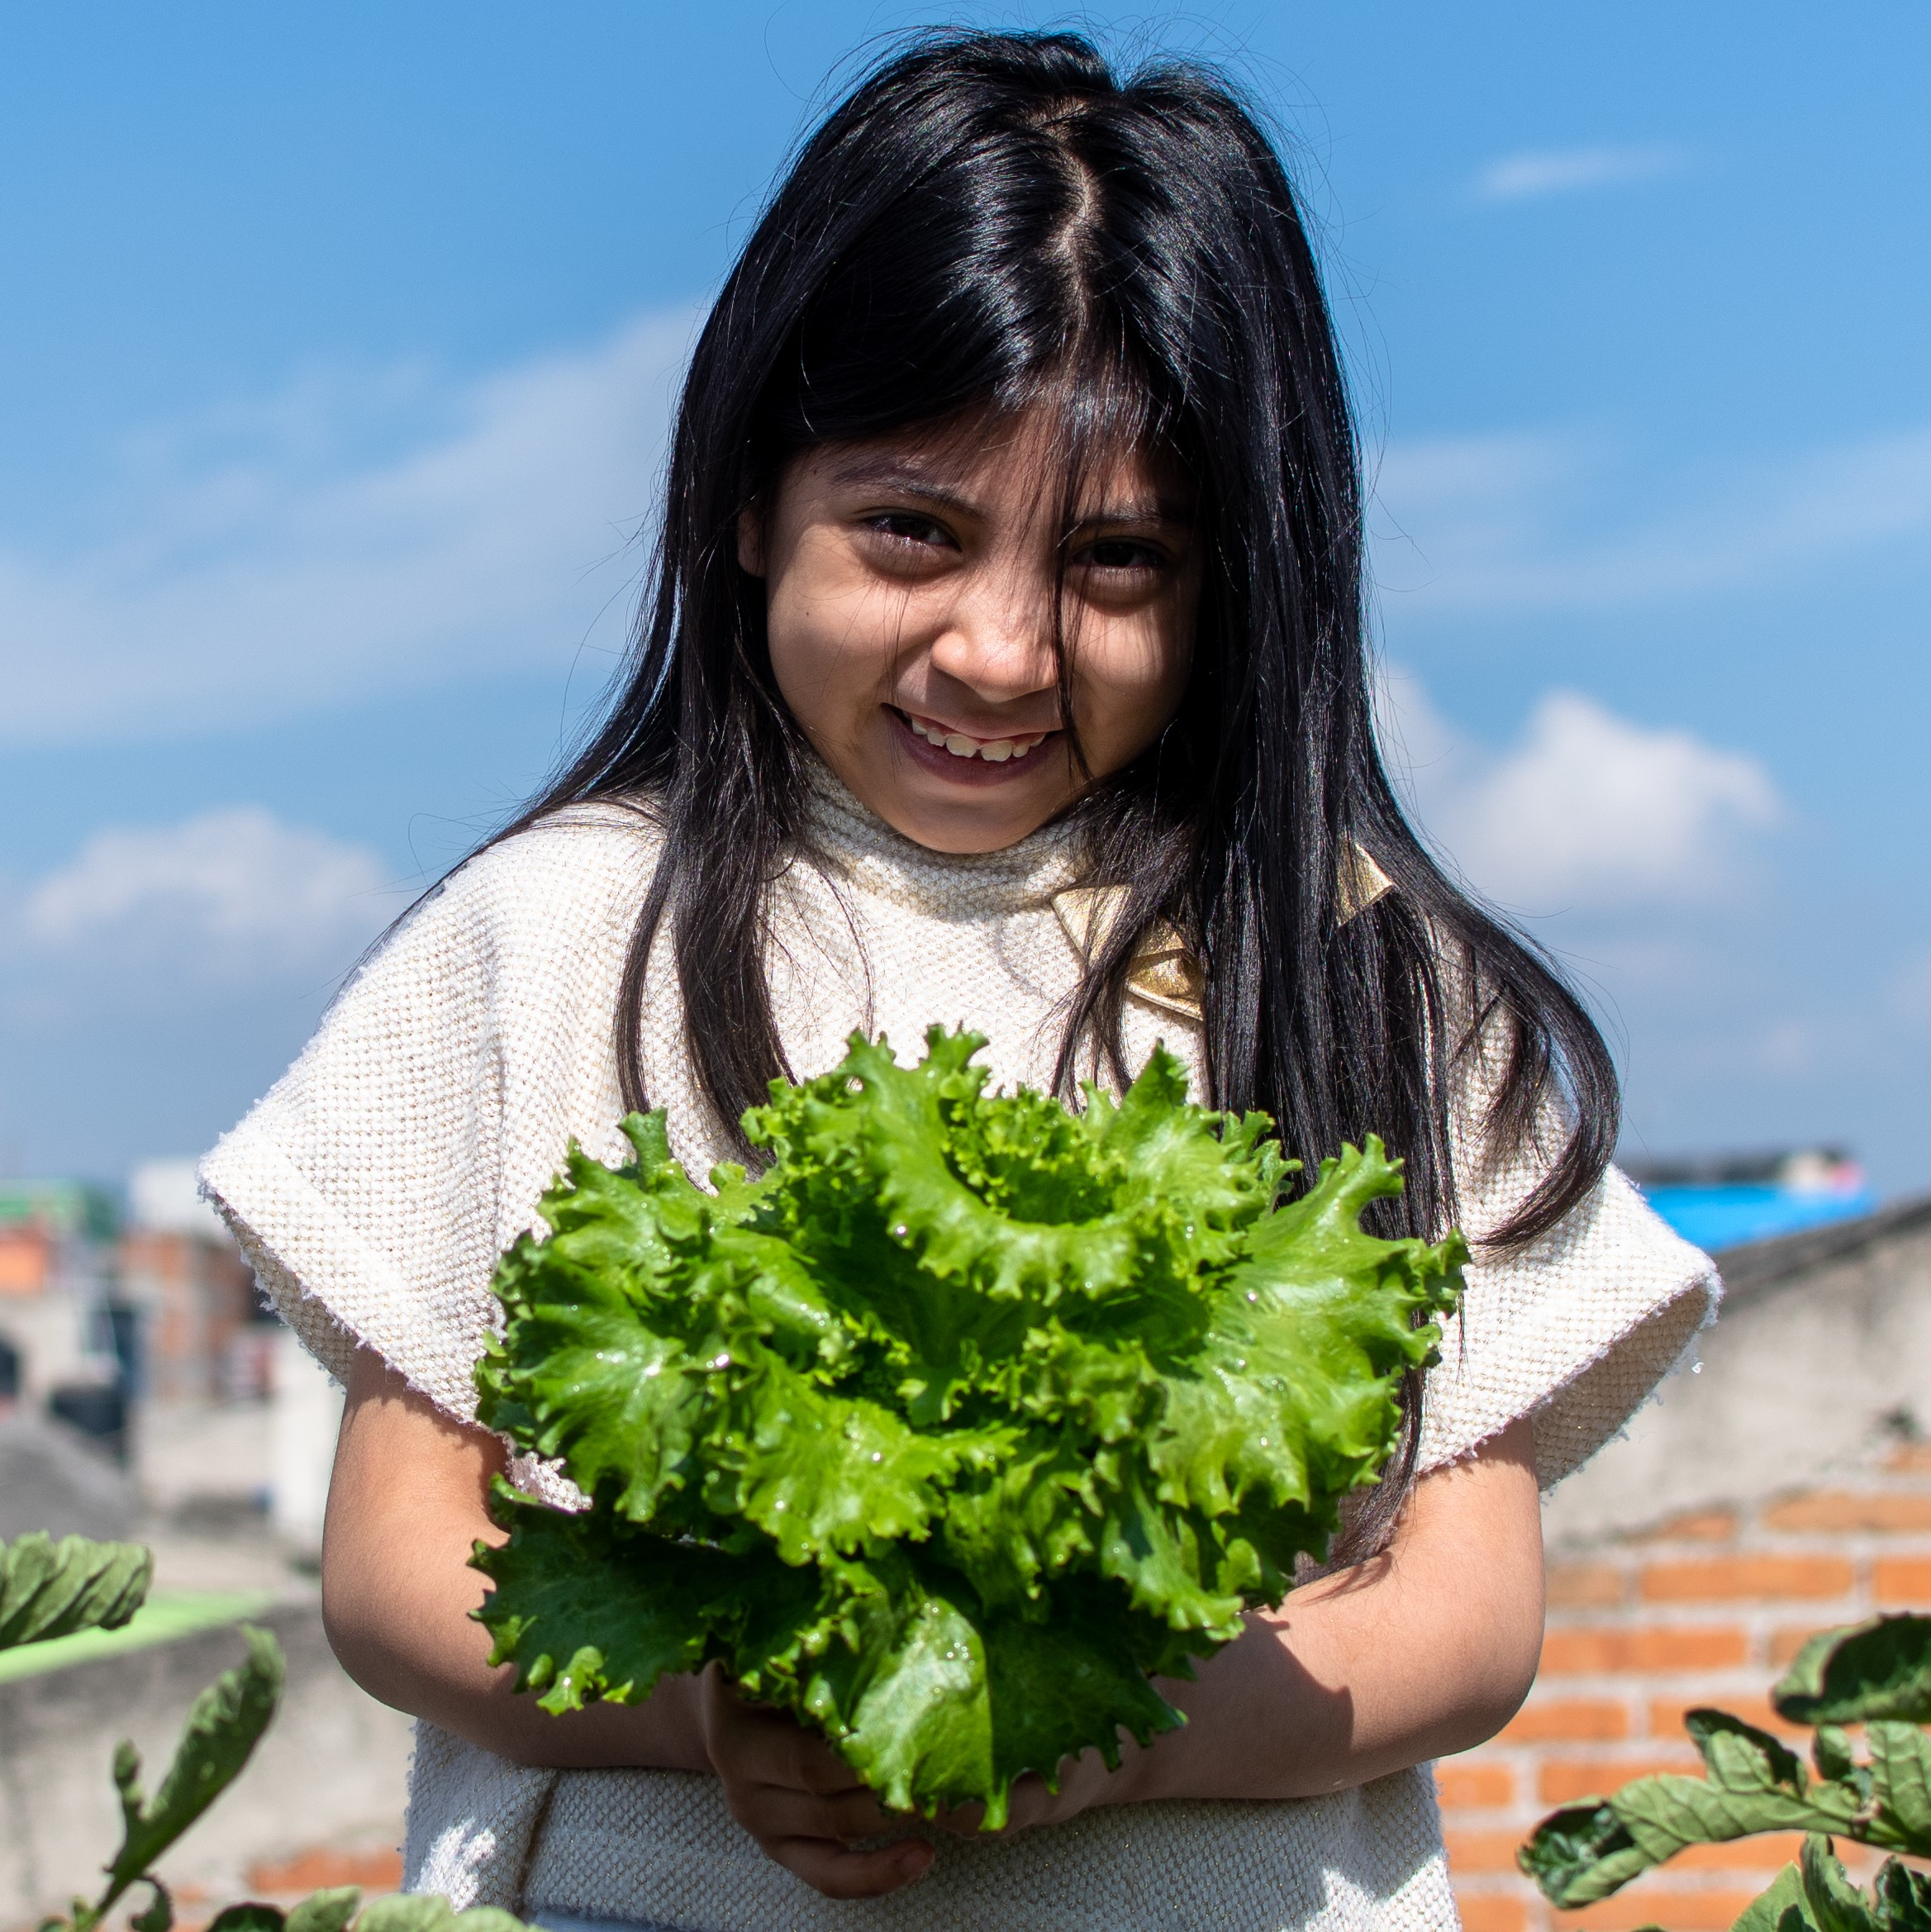 young child in a garden holding lettuce